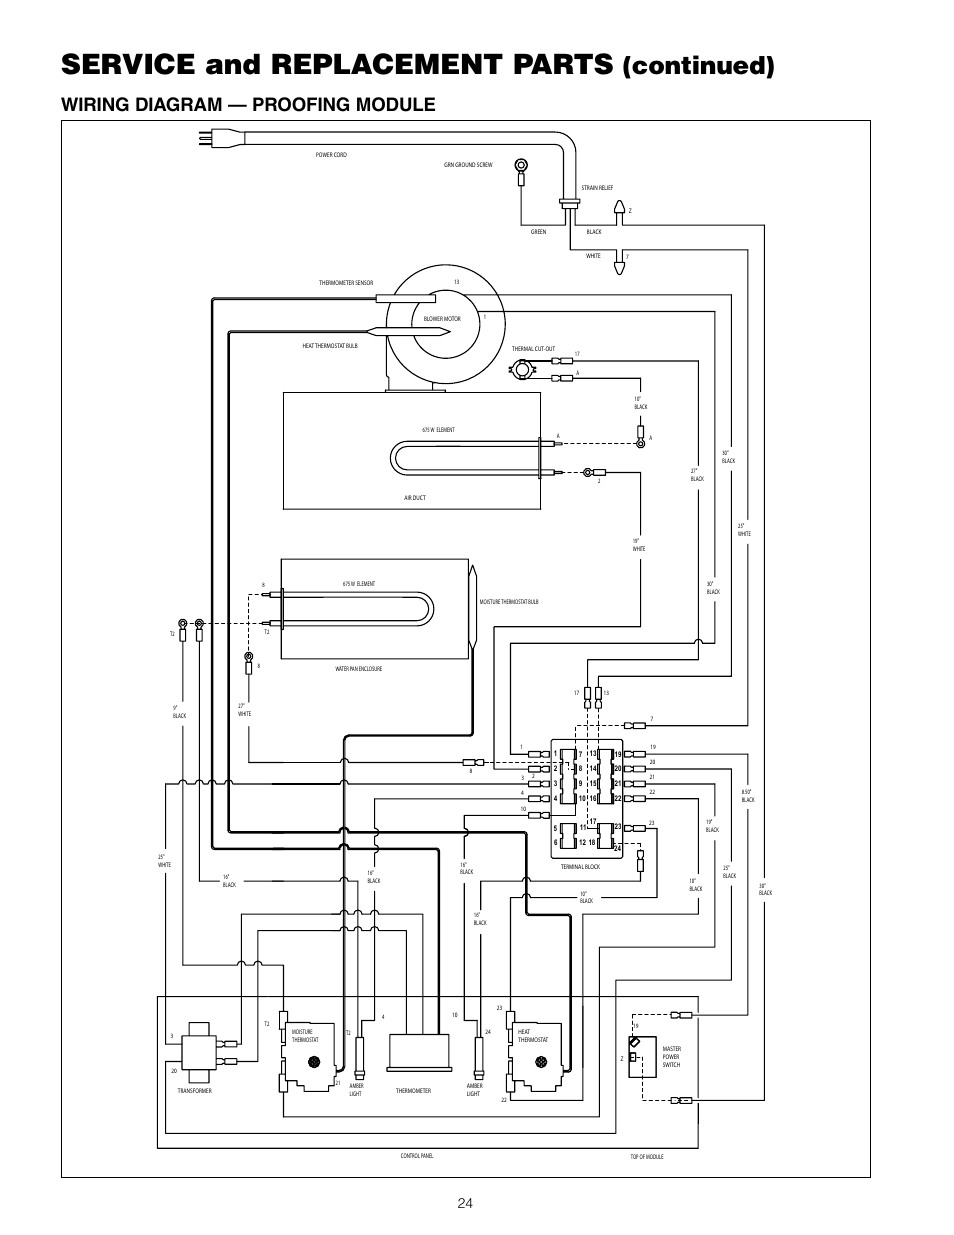 hight resolution of service and replacement parts continued wiring diagram proofing metro c5 wiring diagram for